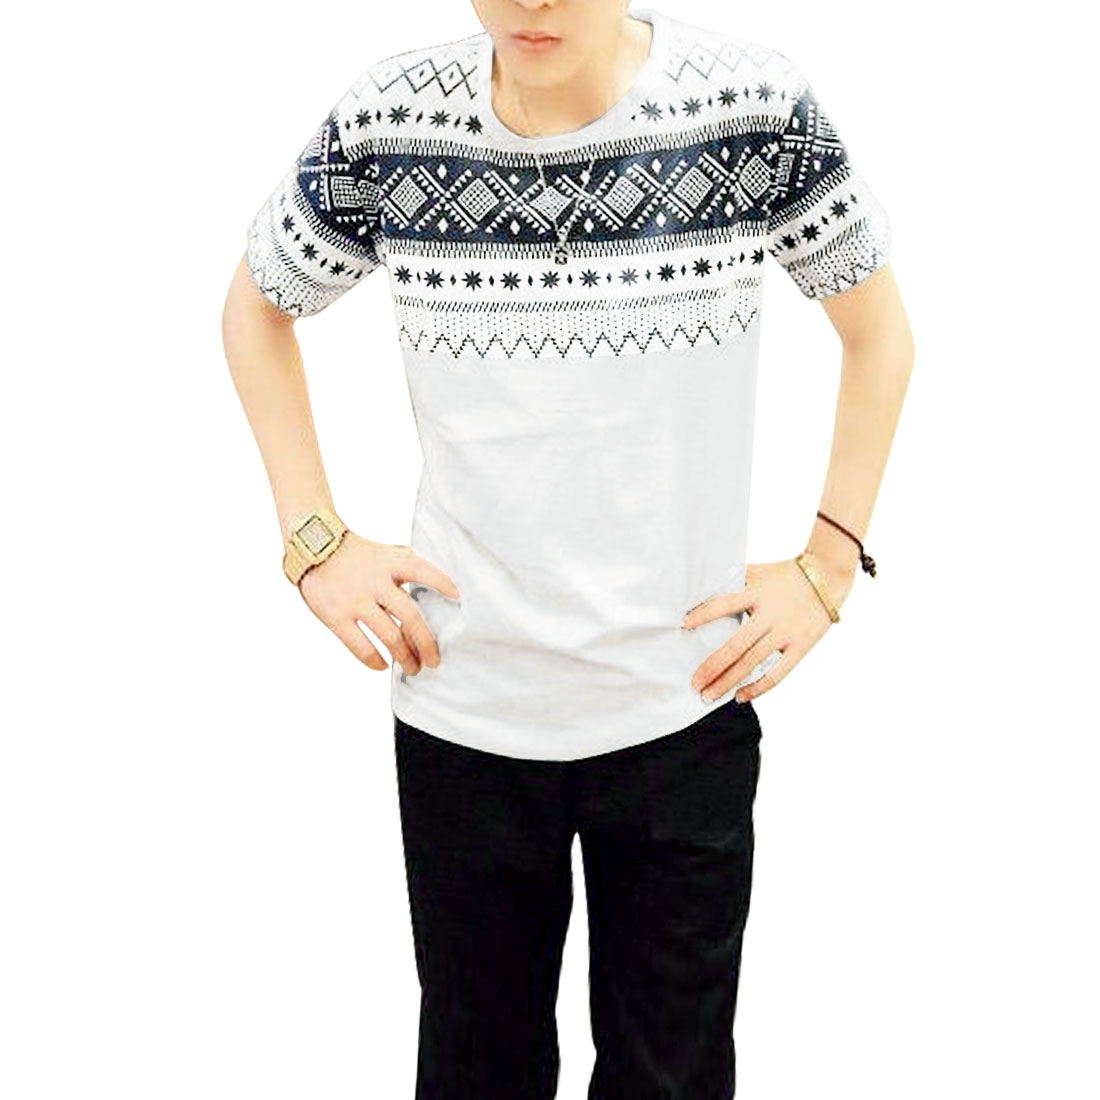 Navy Blue Jacquard Pattern Round Neck Leisure T-Shirt White S for Men